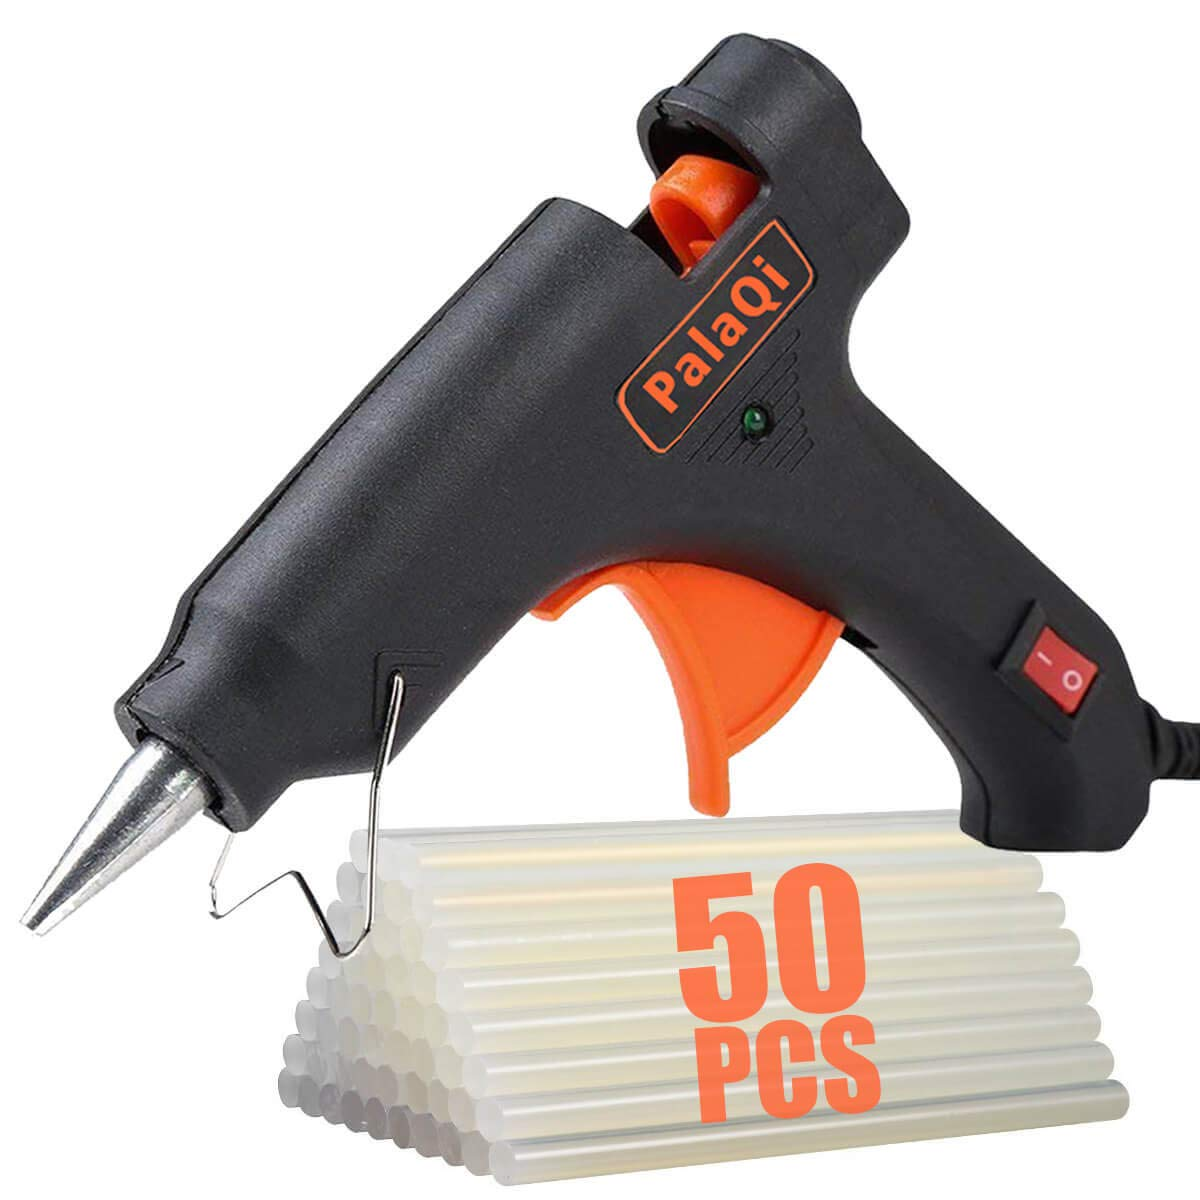 PalaQi Hot Glue Gun,Mini Glue Gun Kit with 50pcs Glue Sticks 20 Watts High Temperature Glue Gun for Artistic Creation Crafts Gifts Sealing DIY Small Craft Projects and Home School Office Quick Repairs